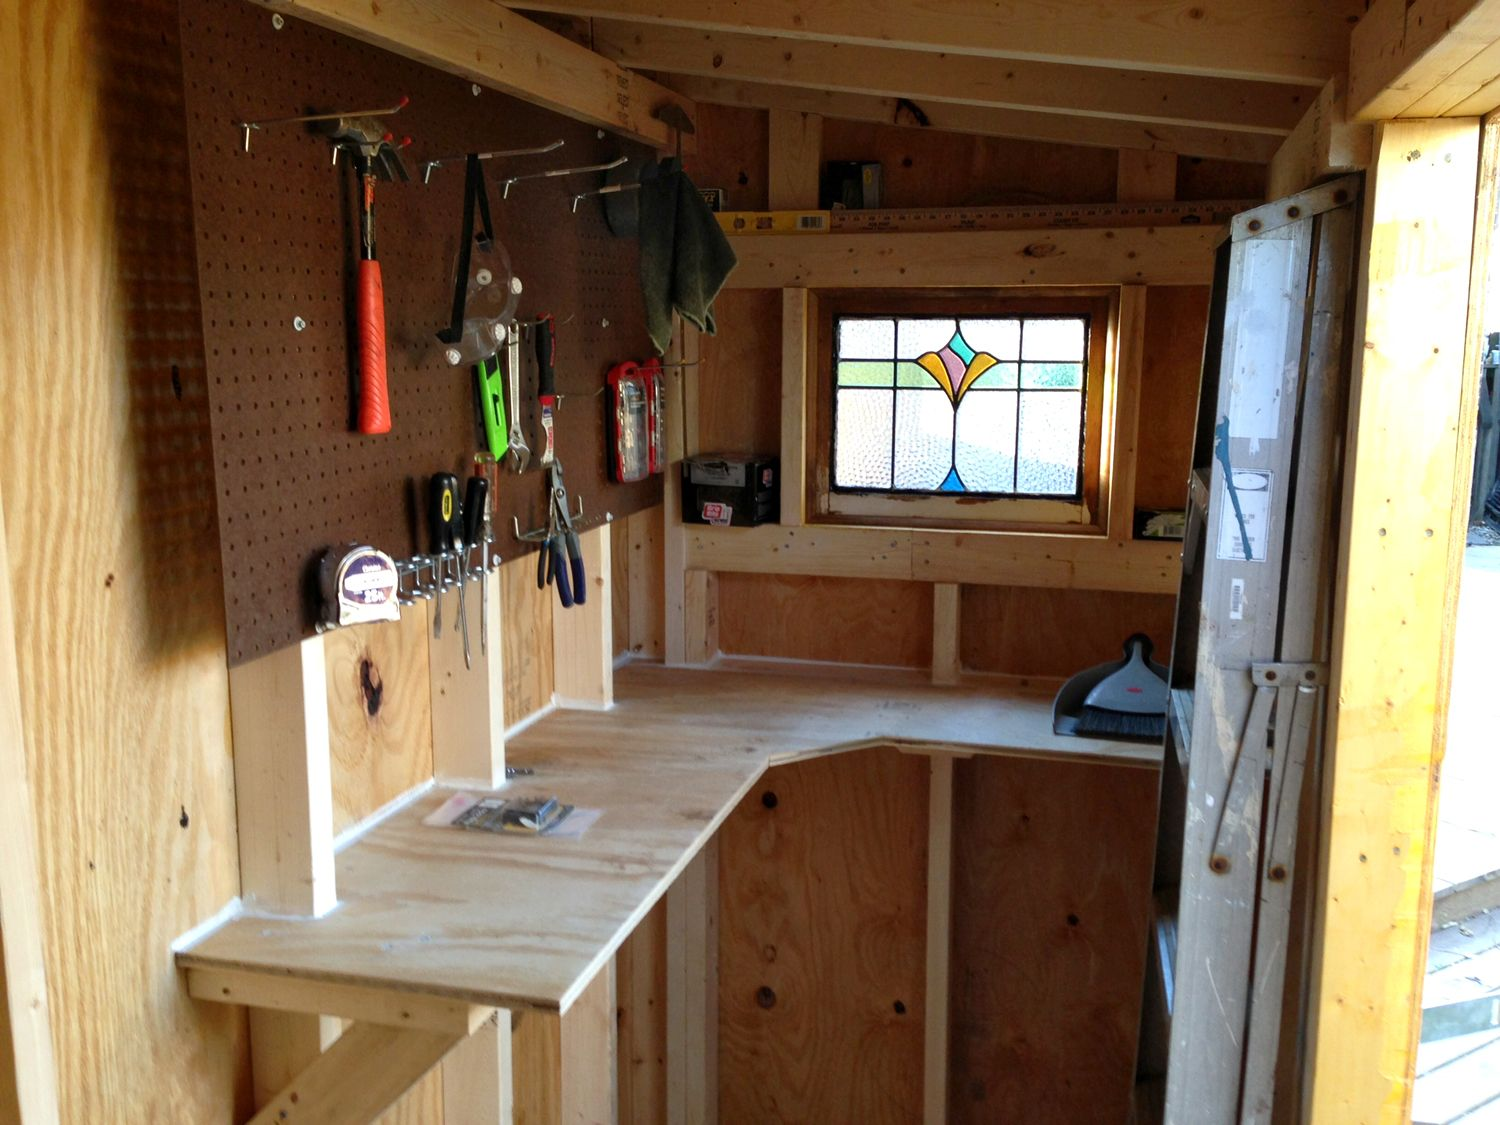 Sturdy Workbench And Peg Board To Maximize Small Space